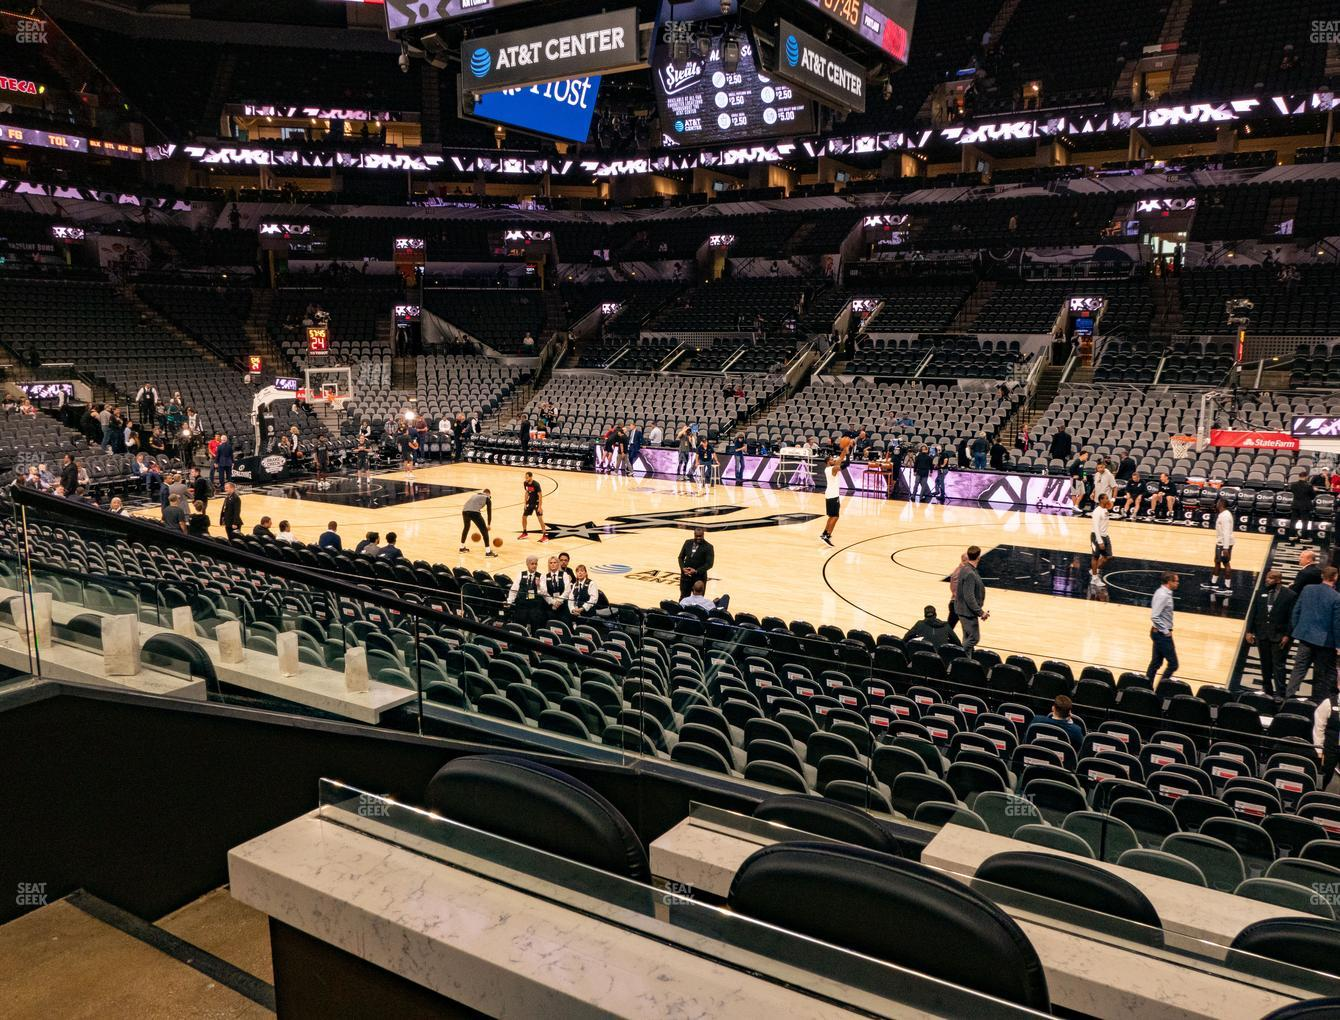 San Antonio Spurs at AT&T Center Super Box 1 B View